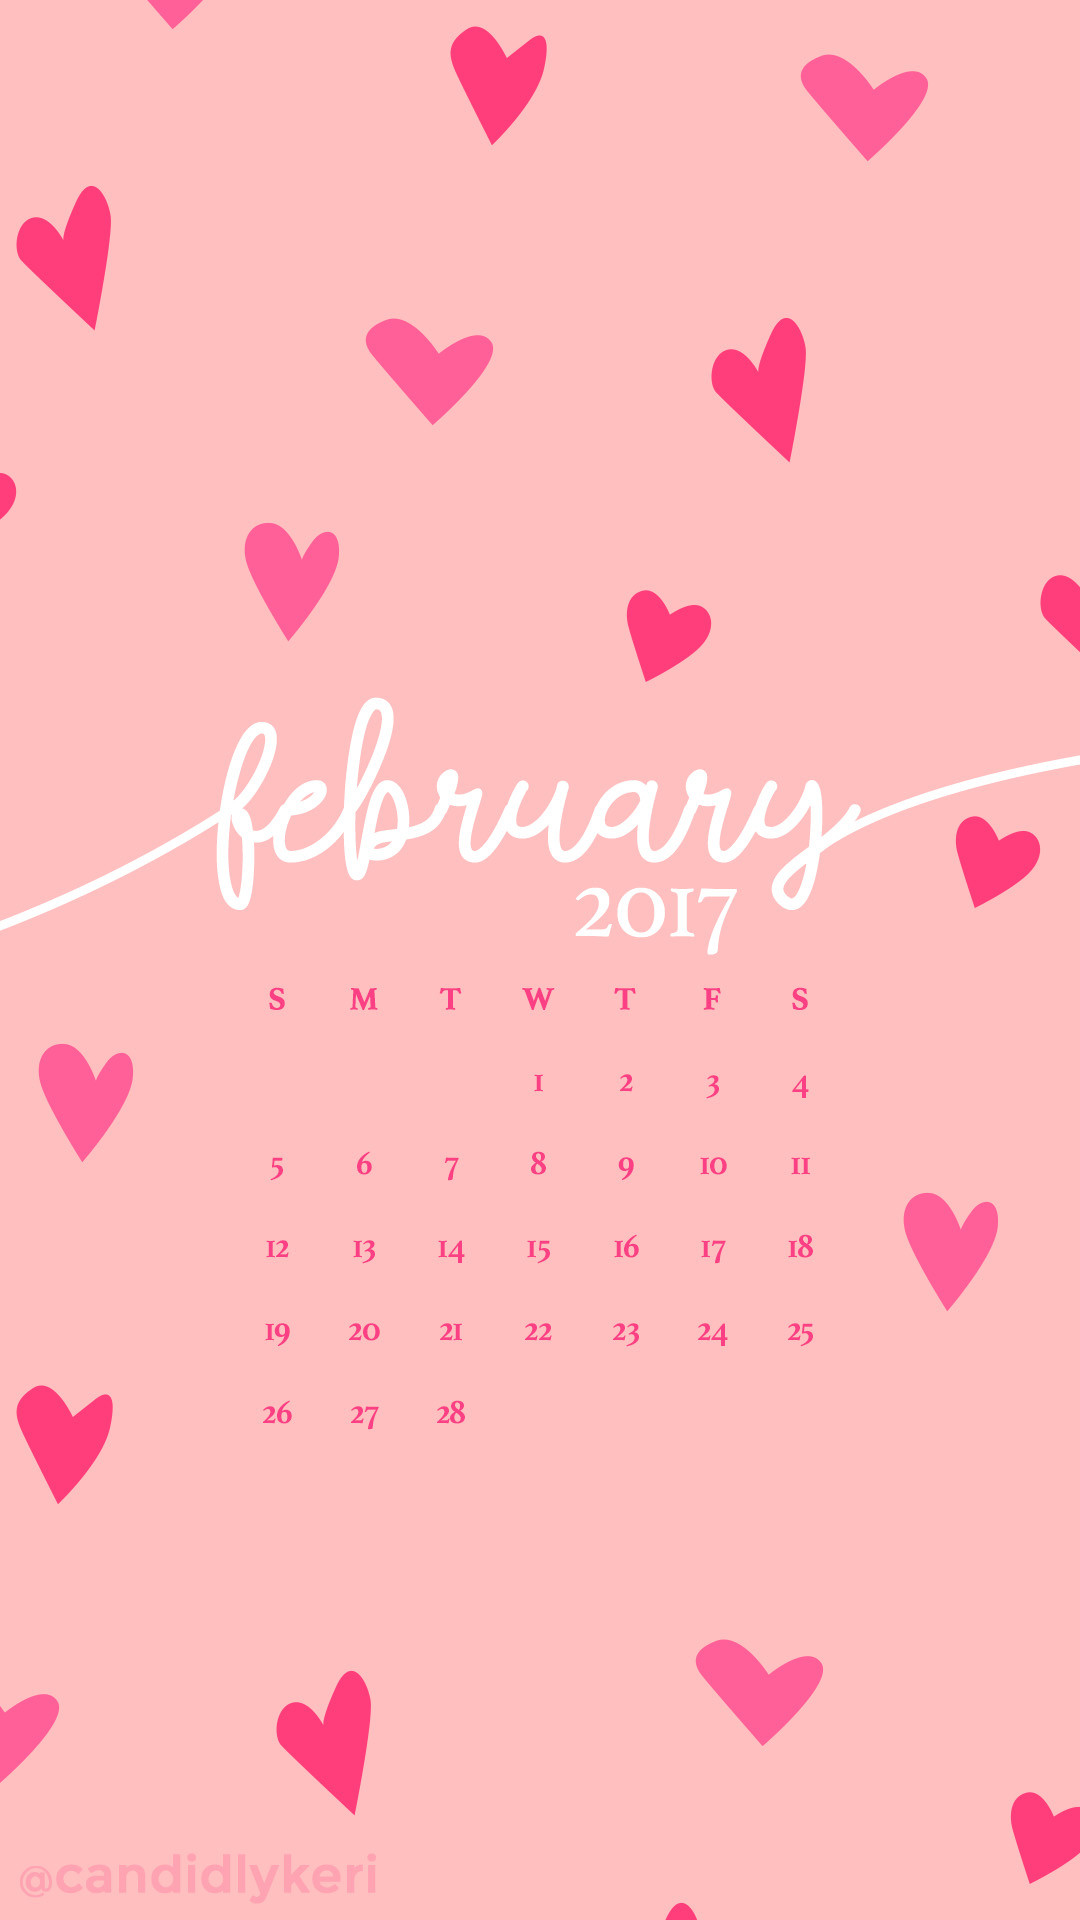 Pink hearts February calendar 2017 wallpaper you can download for free on  the blog! For